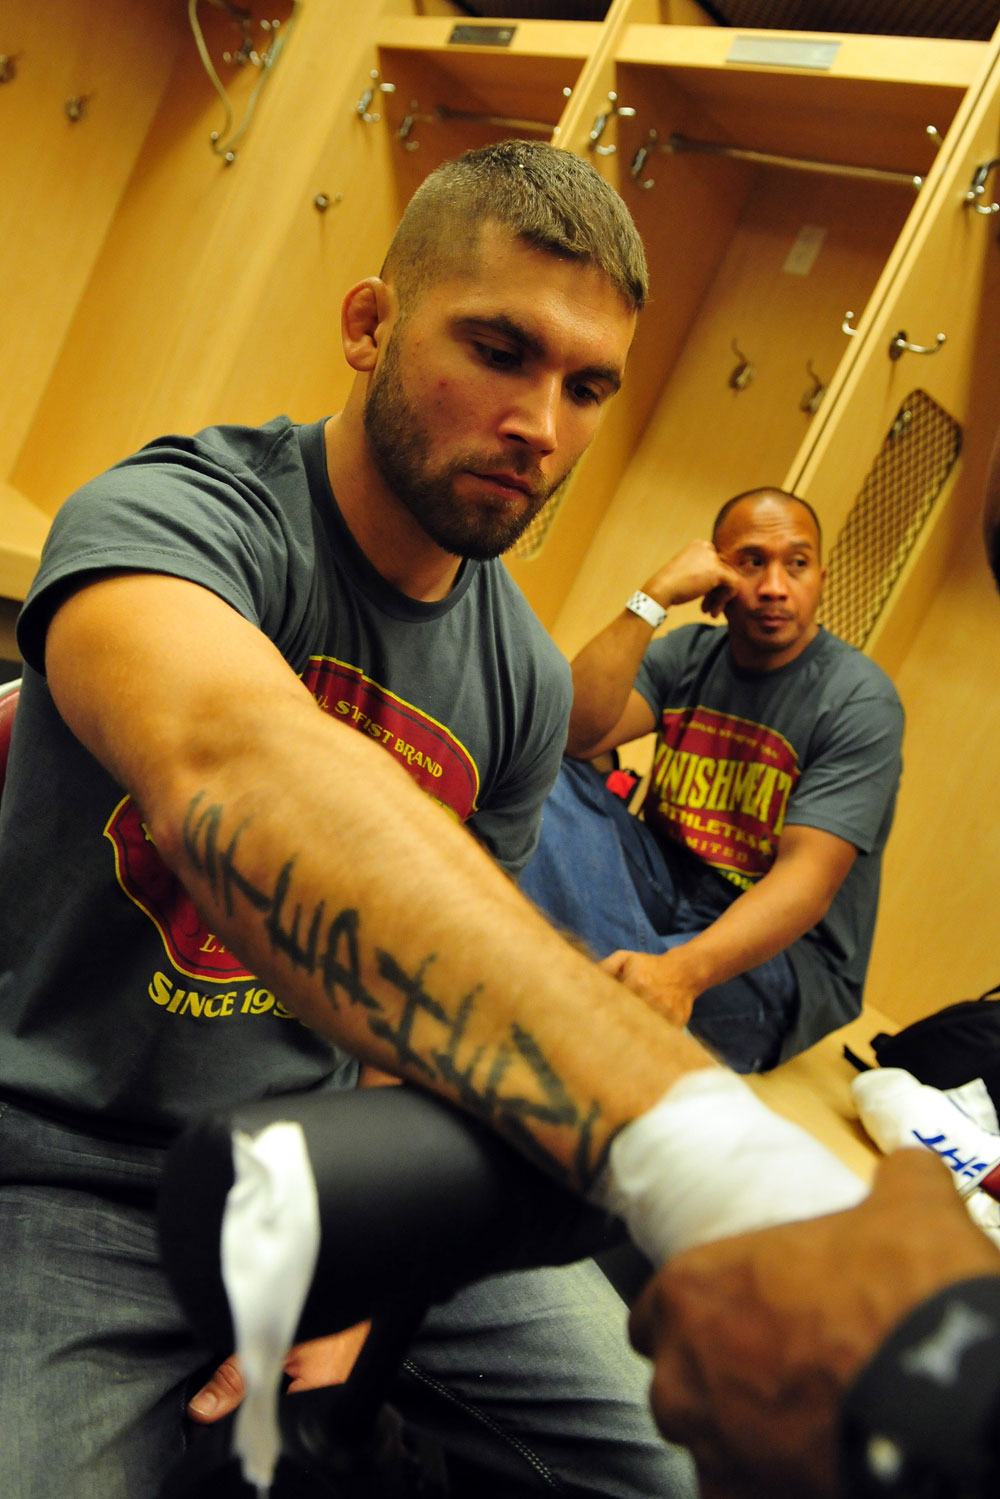 Jeremy Stephens before his fight with Anthony Pettis